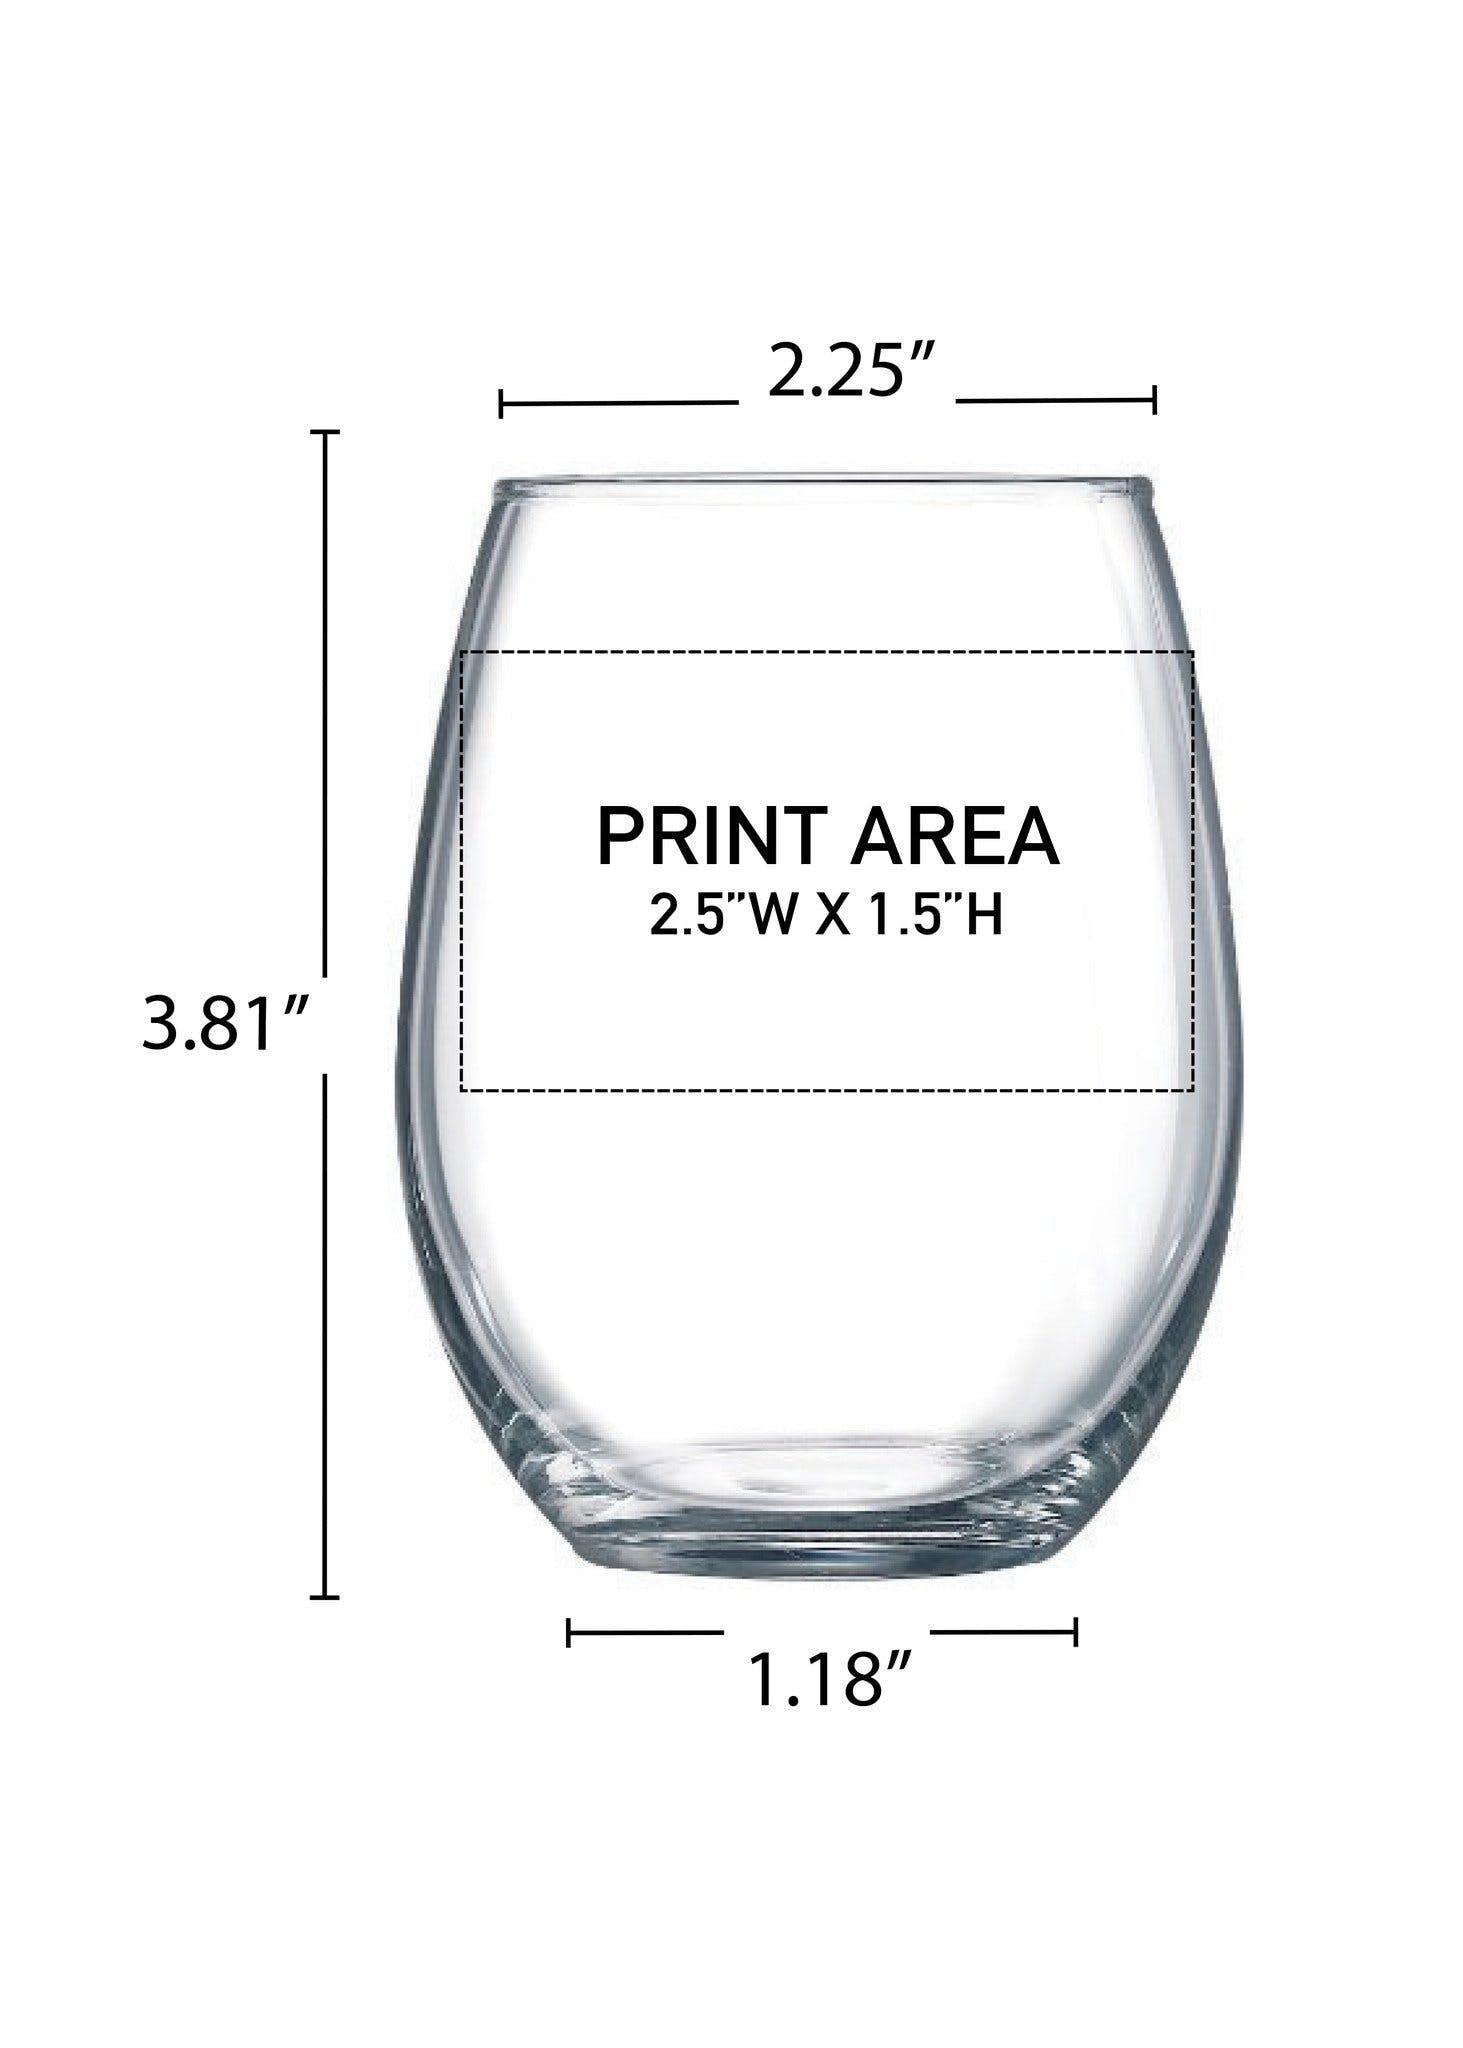 9 oz. Stemless Wine #310 - sold by Clearwater Gear